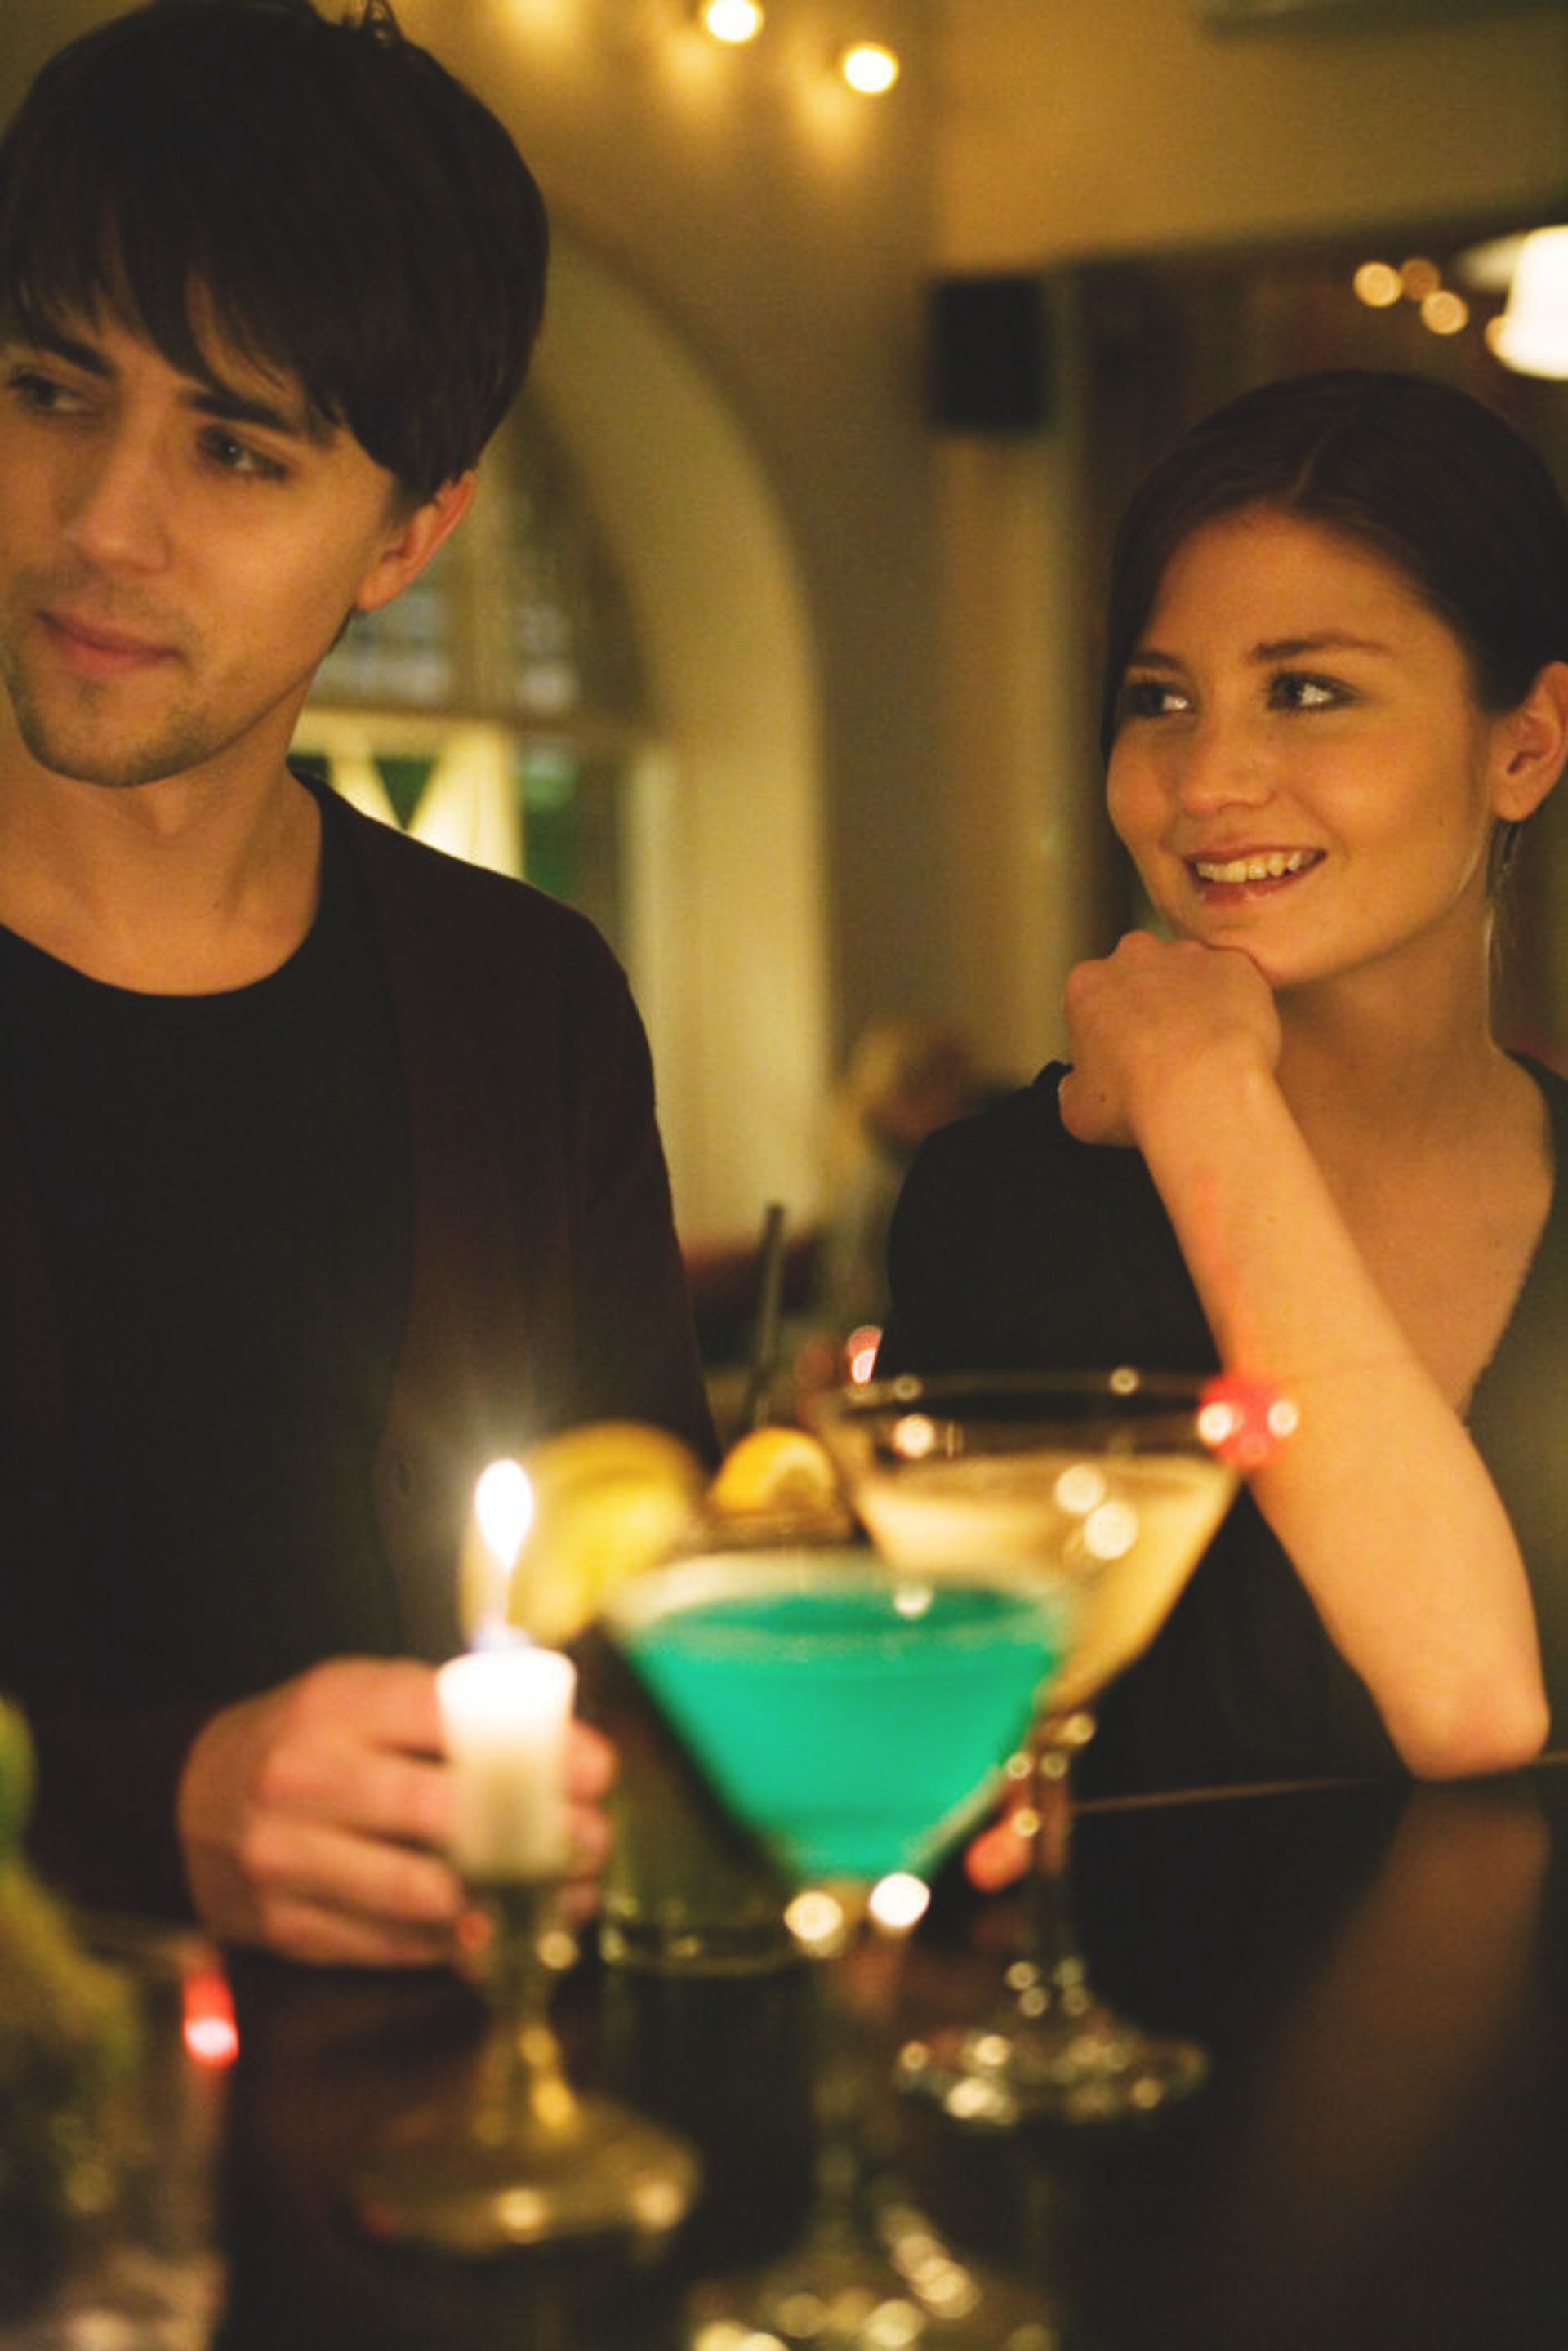 A man and woman having a date at a bar.